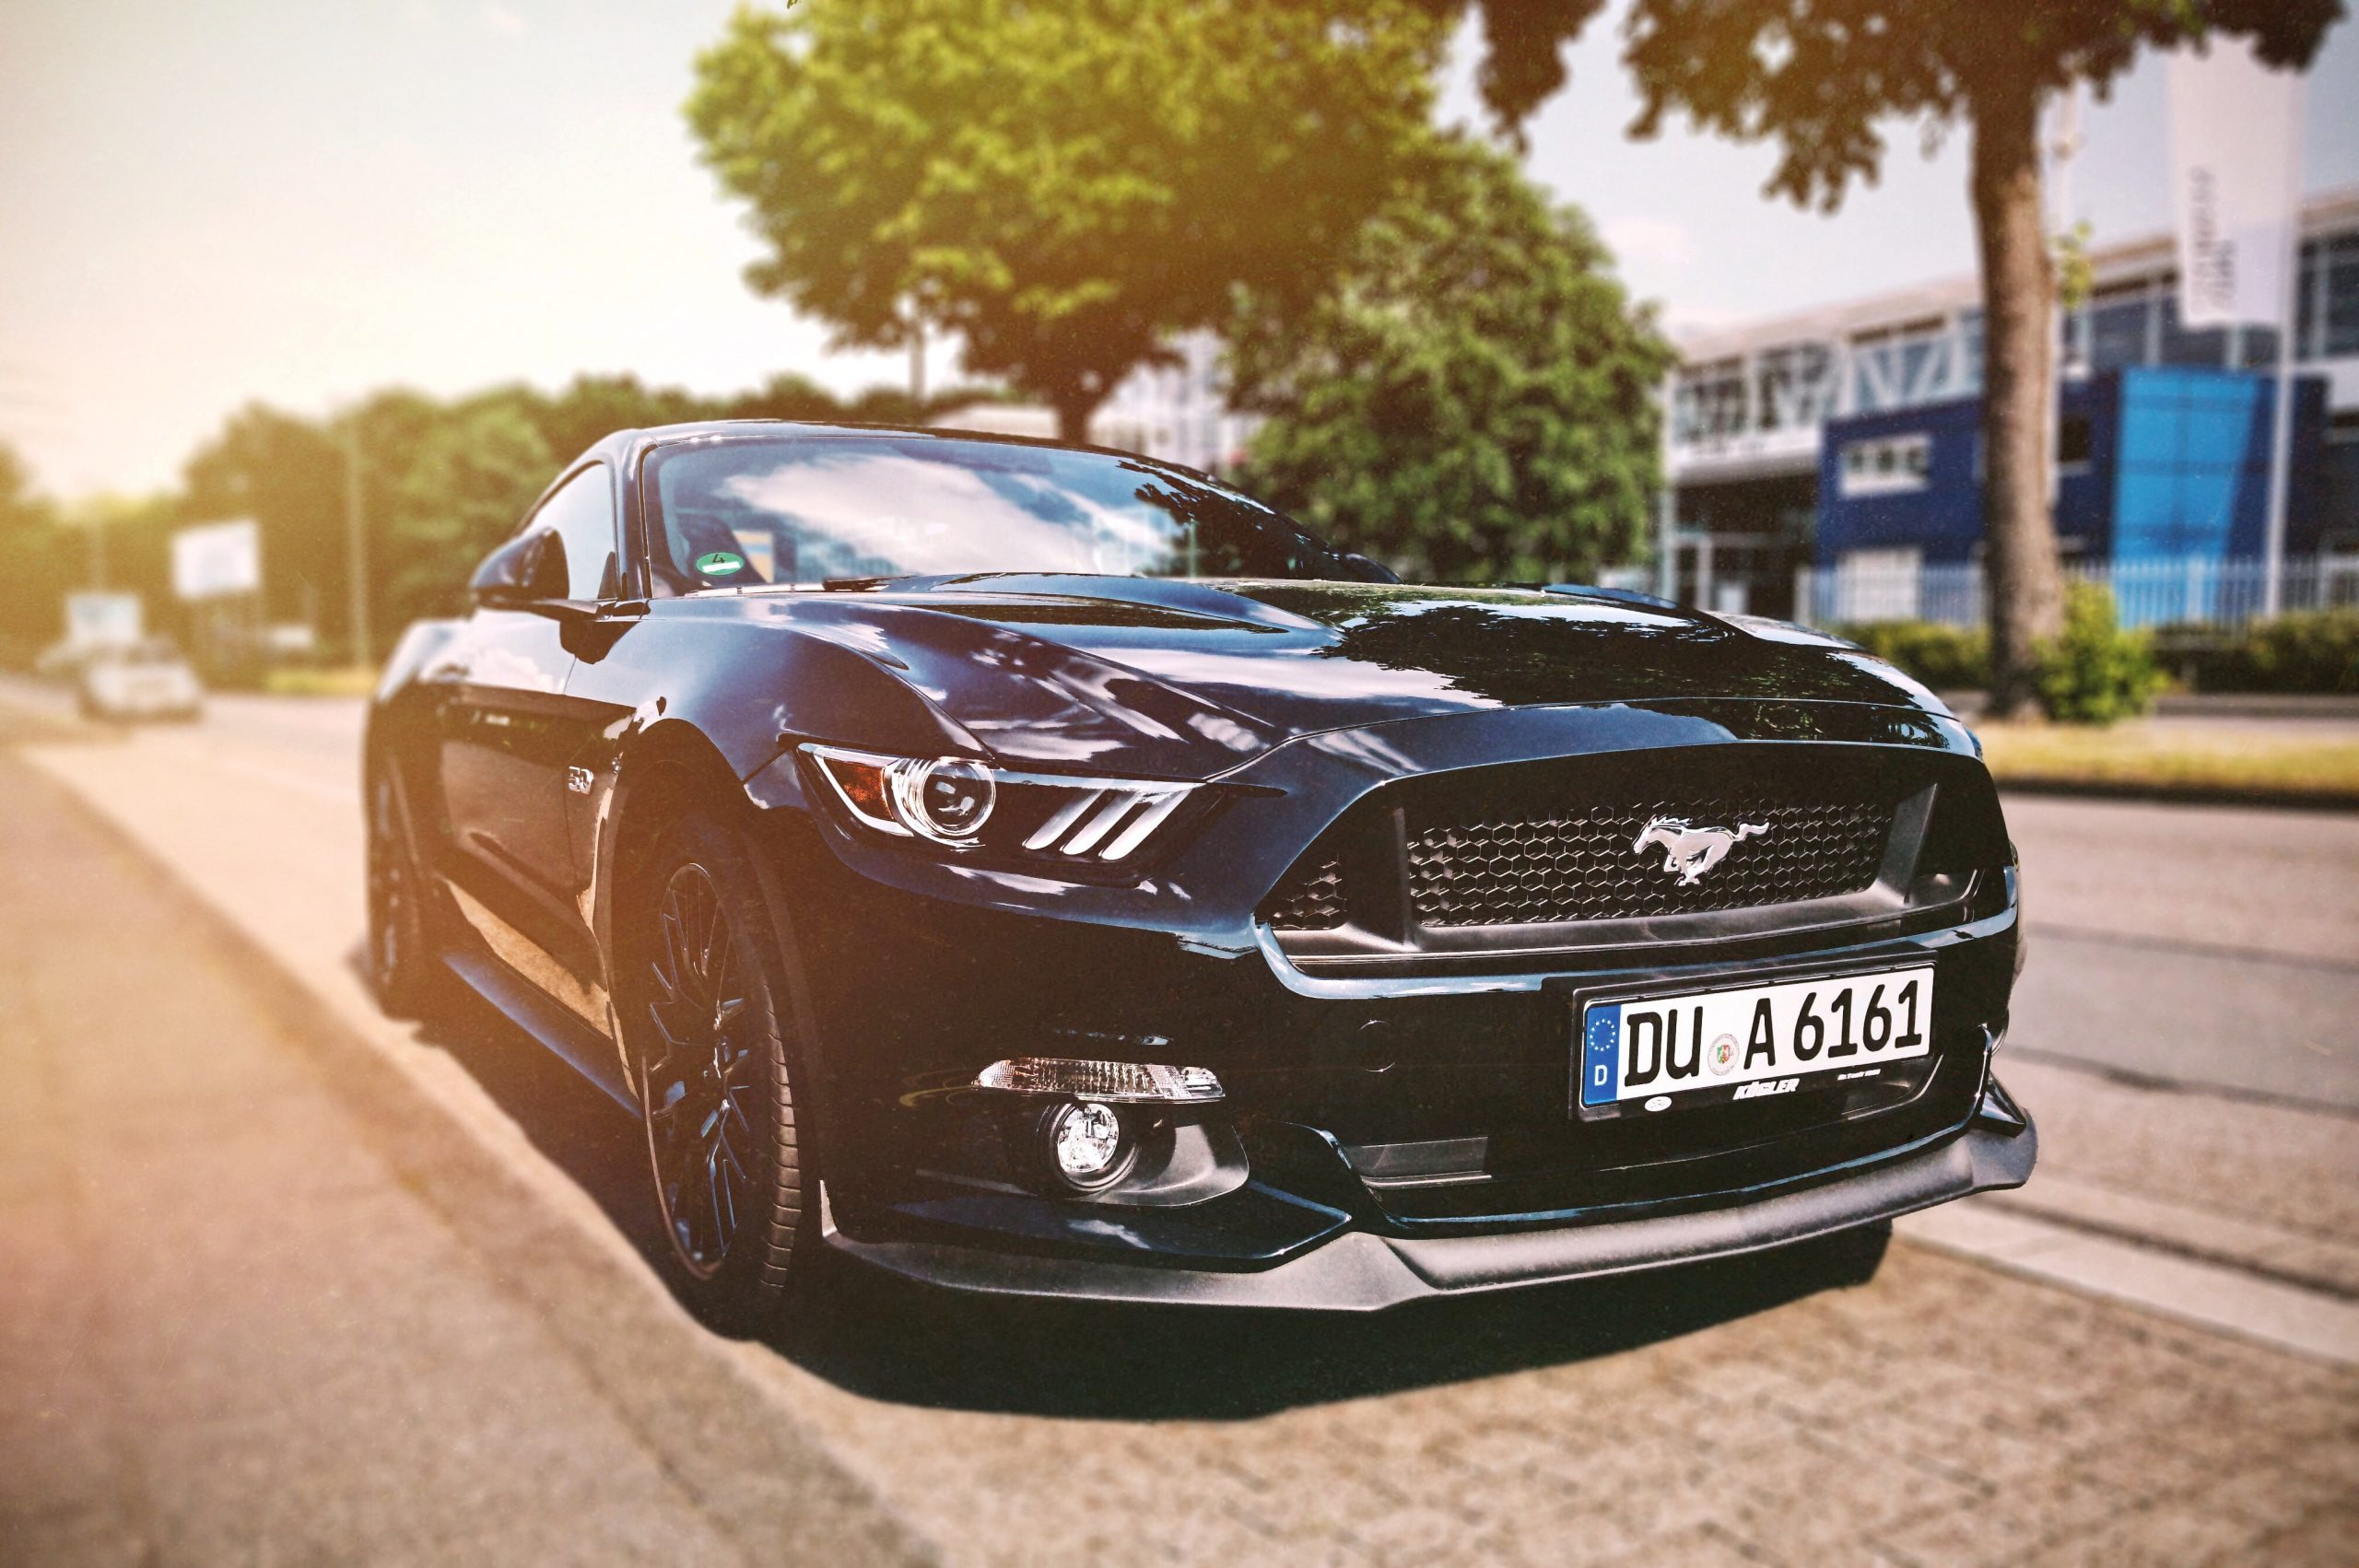 wallpaper Black Mustang sports car parked beside the street